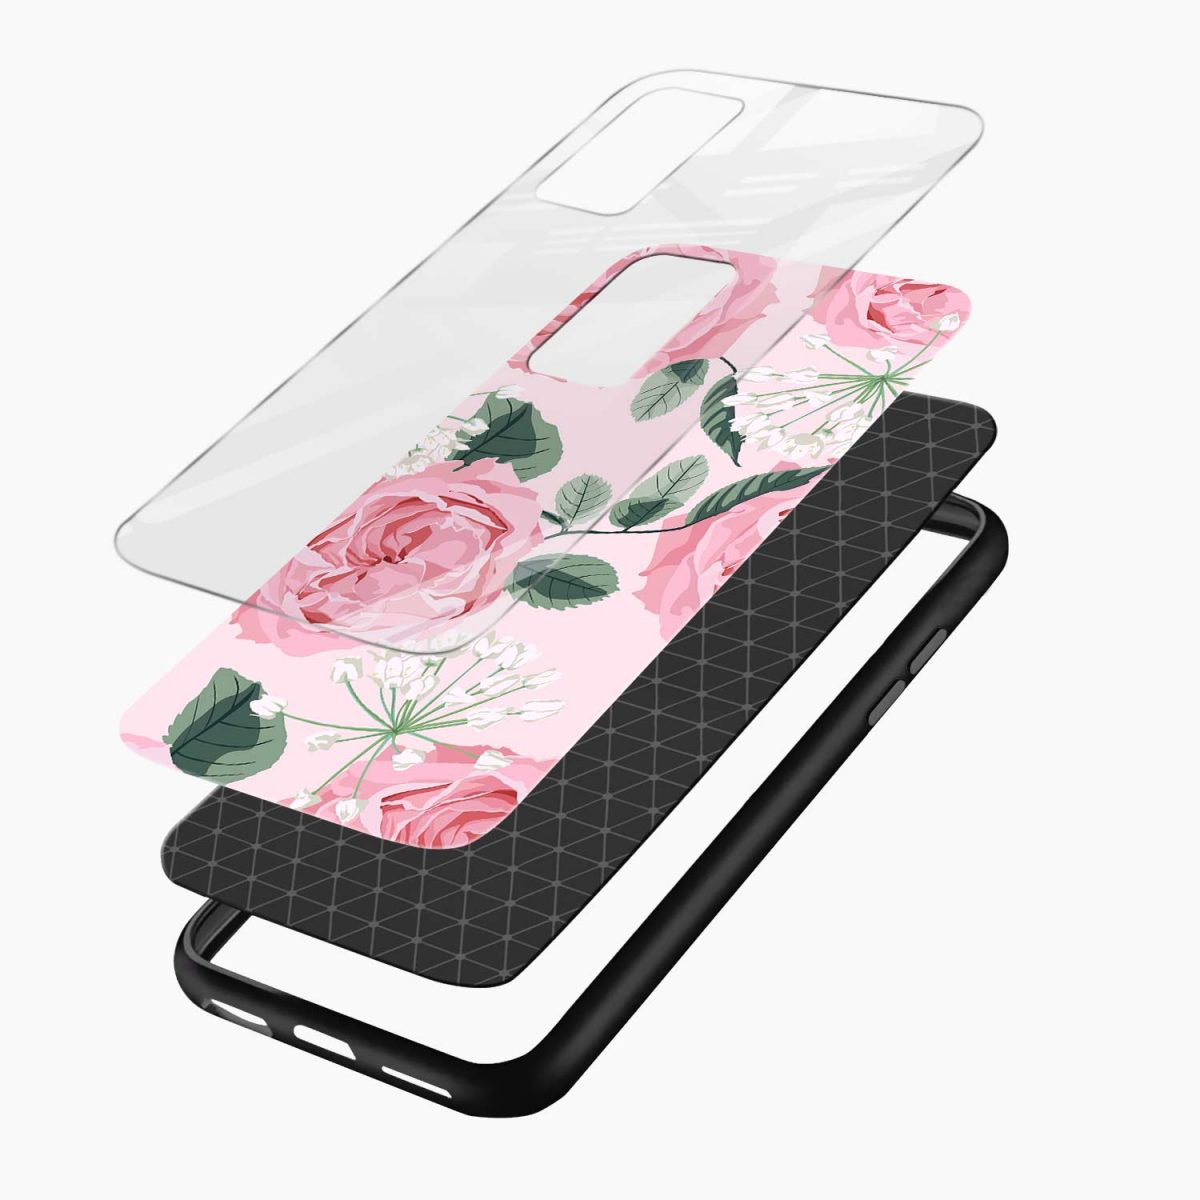 pink floral girlish xiaomi mi 10t pro back cover layers view